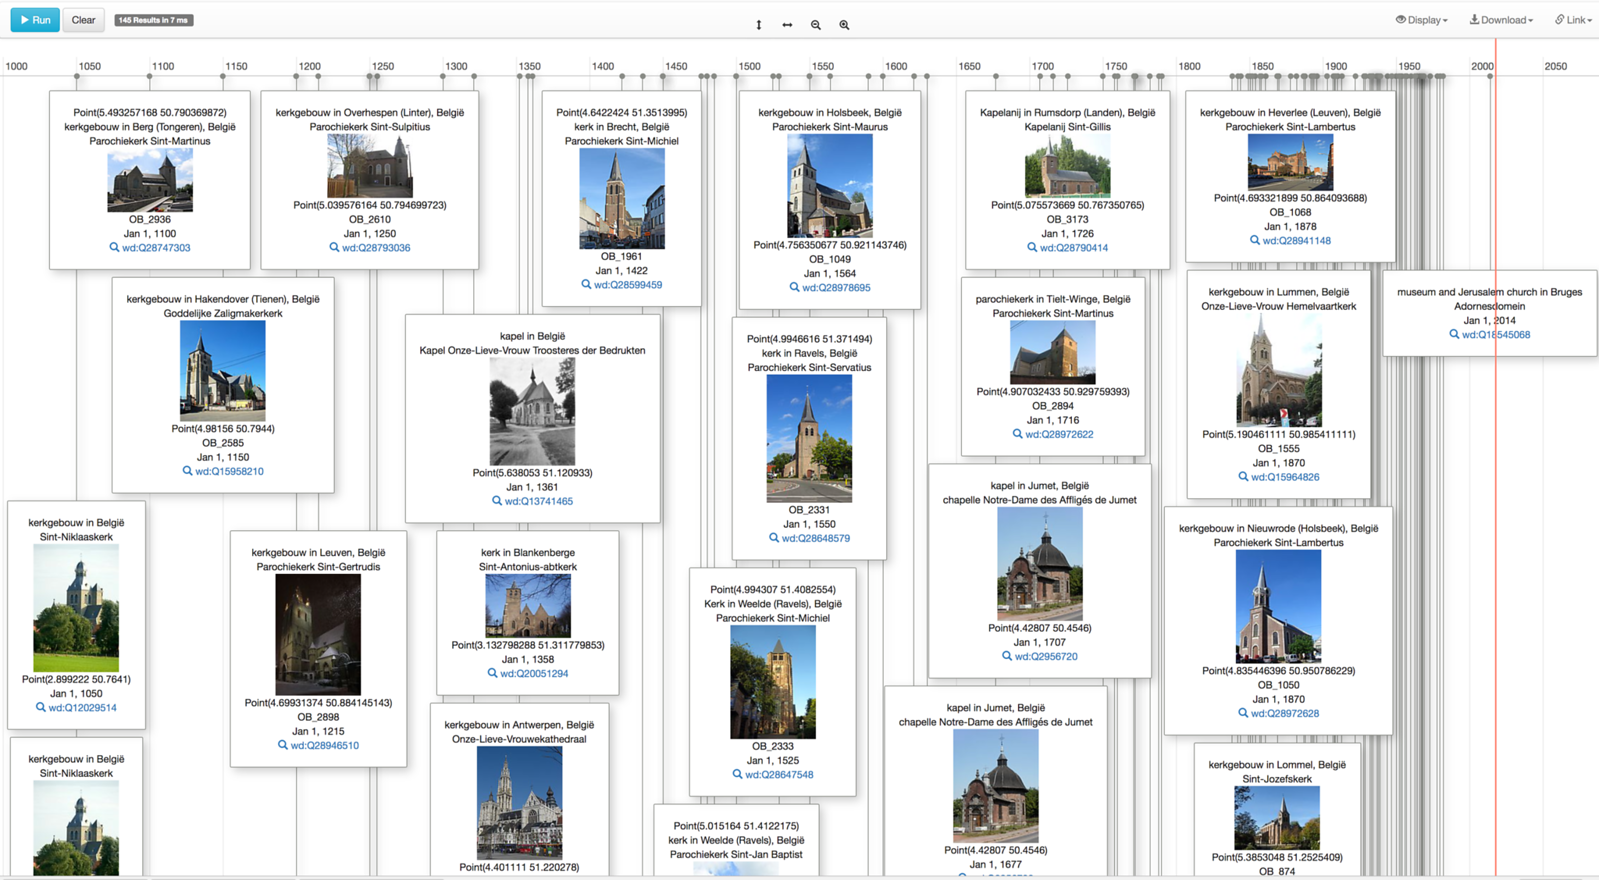 timeline of Belgian Churches